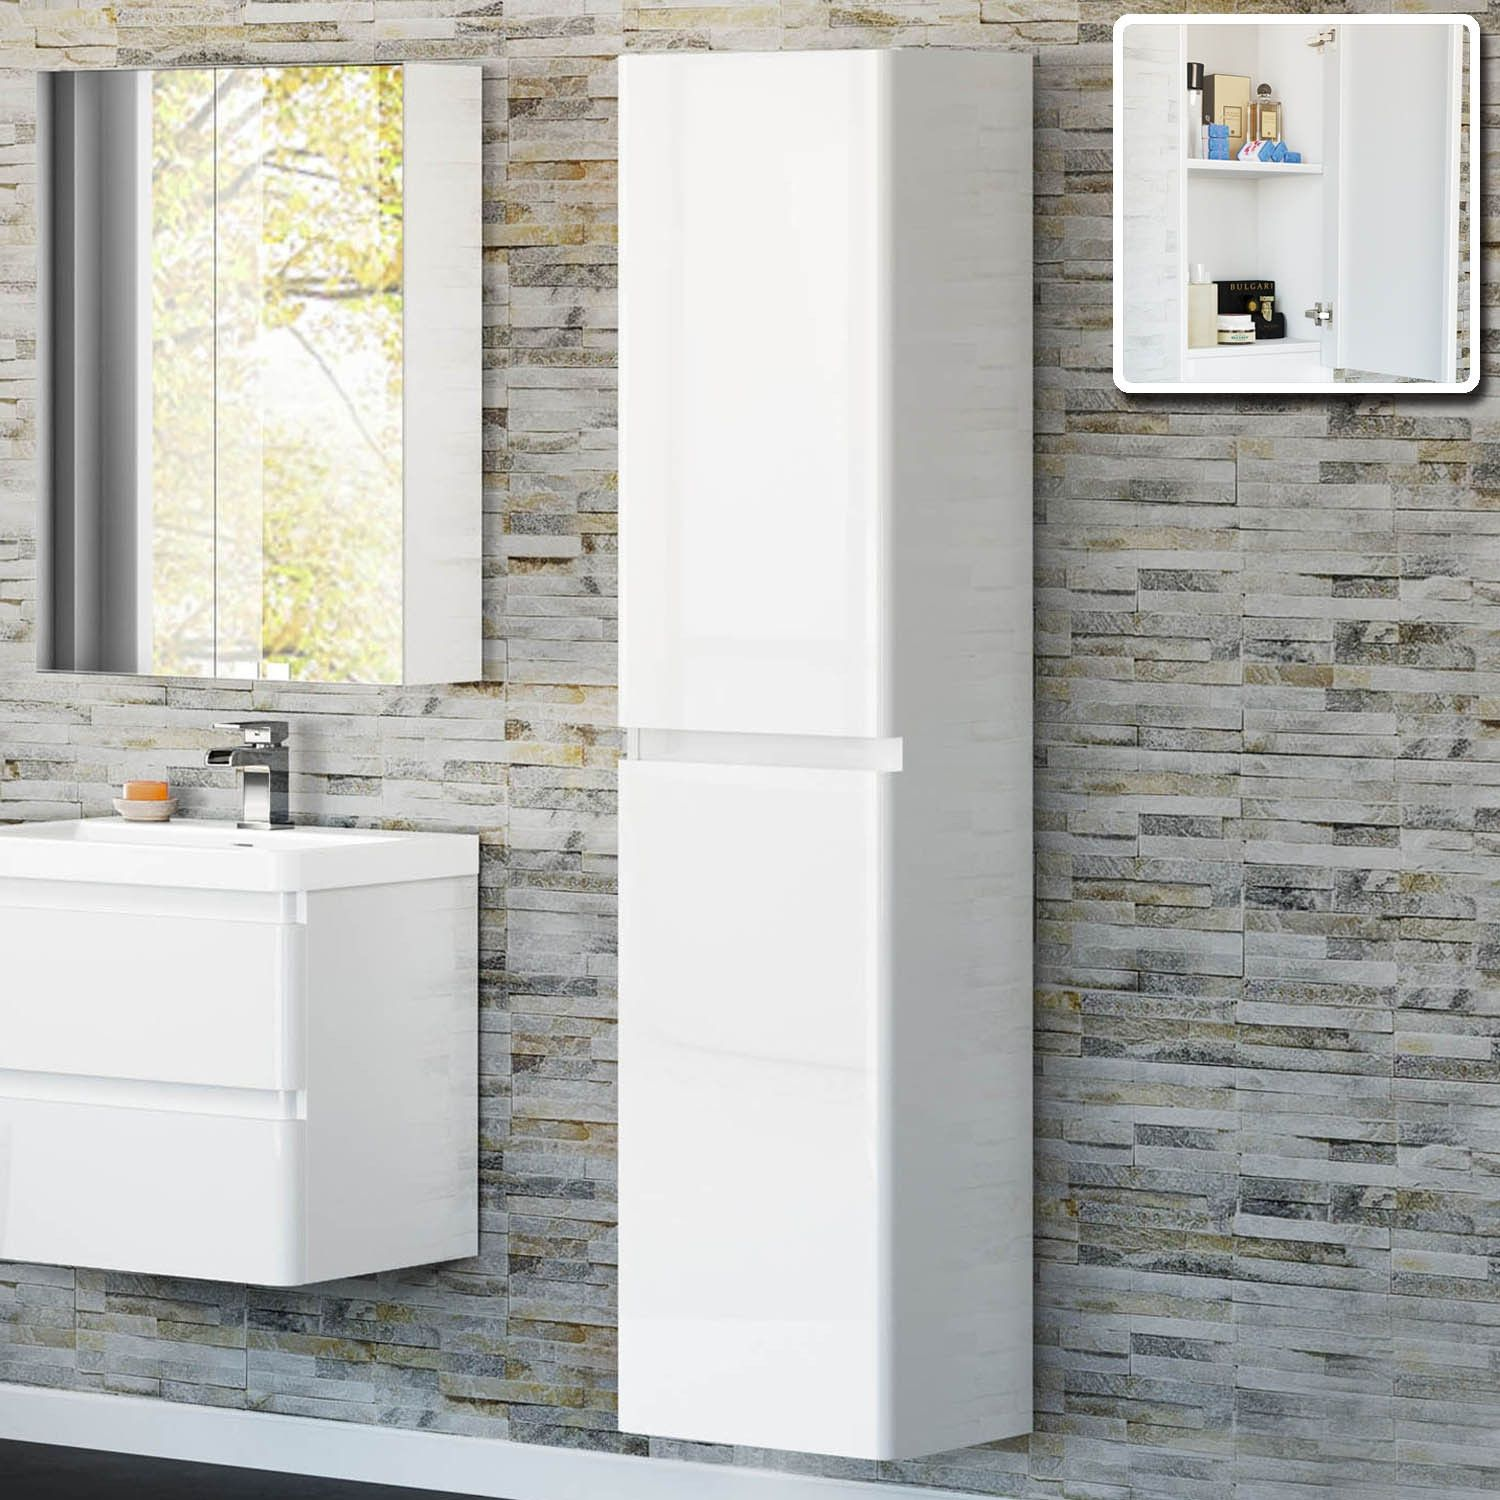 77 White Gloss Wall Mounted Bathroom Cabinet Best Kitchen Ideas Check More At